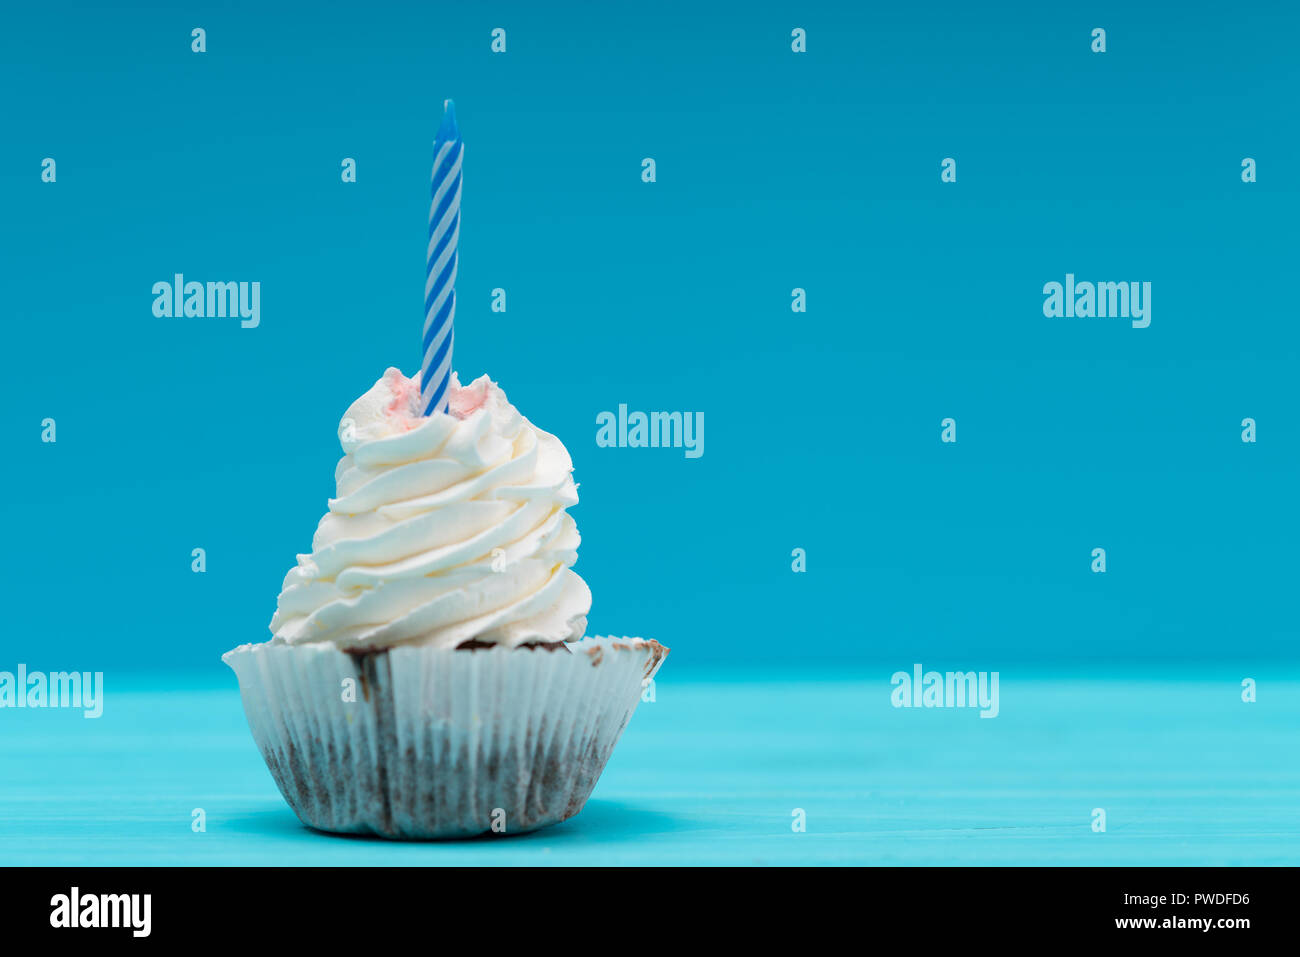 Cupcake with twirled icing and unlit candle to celebrate a birthday or anniversary over blue with copy space - Stock Image